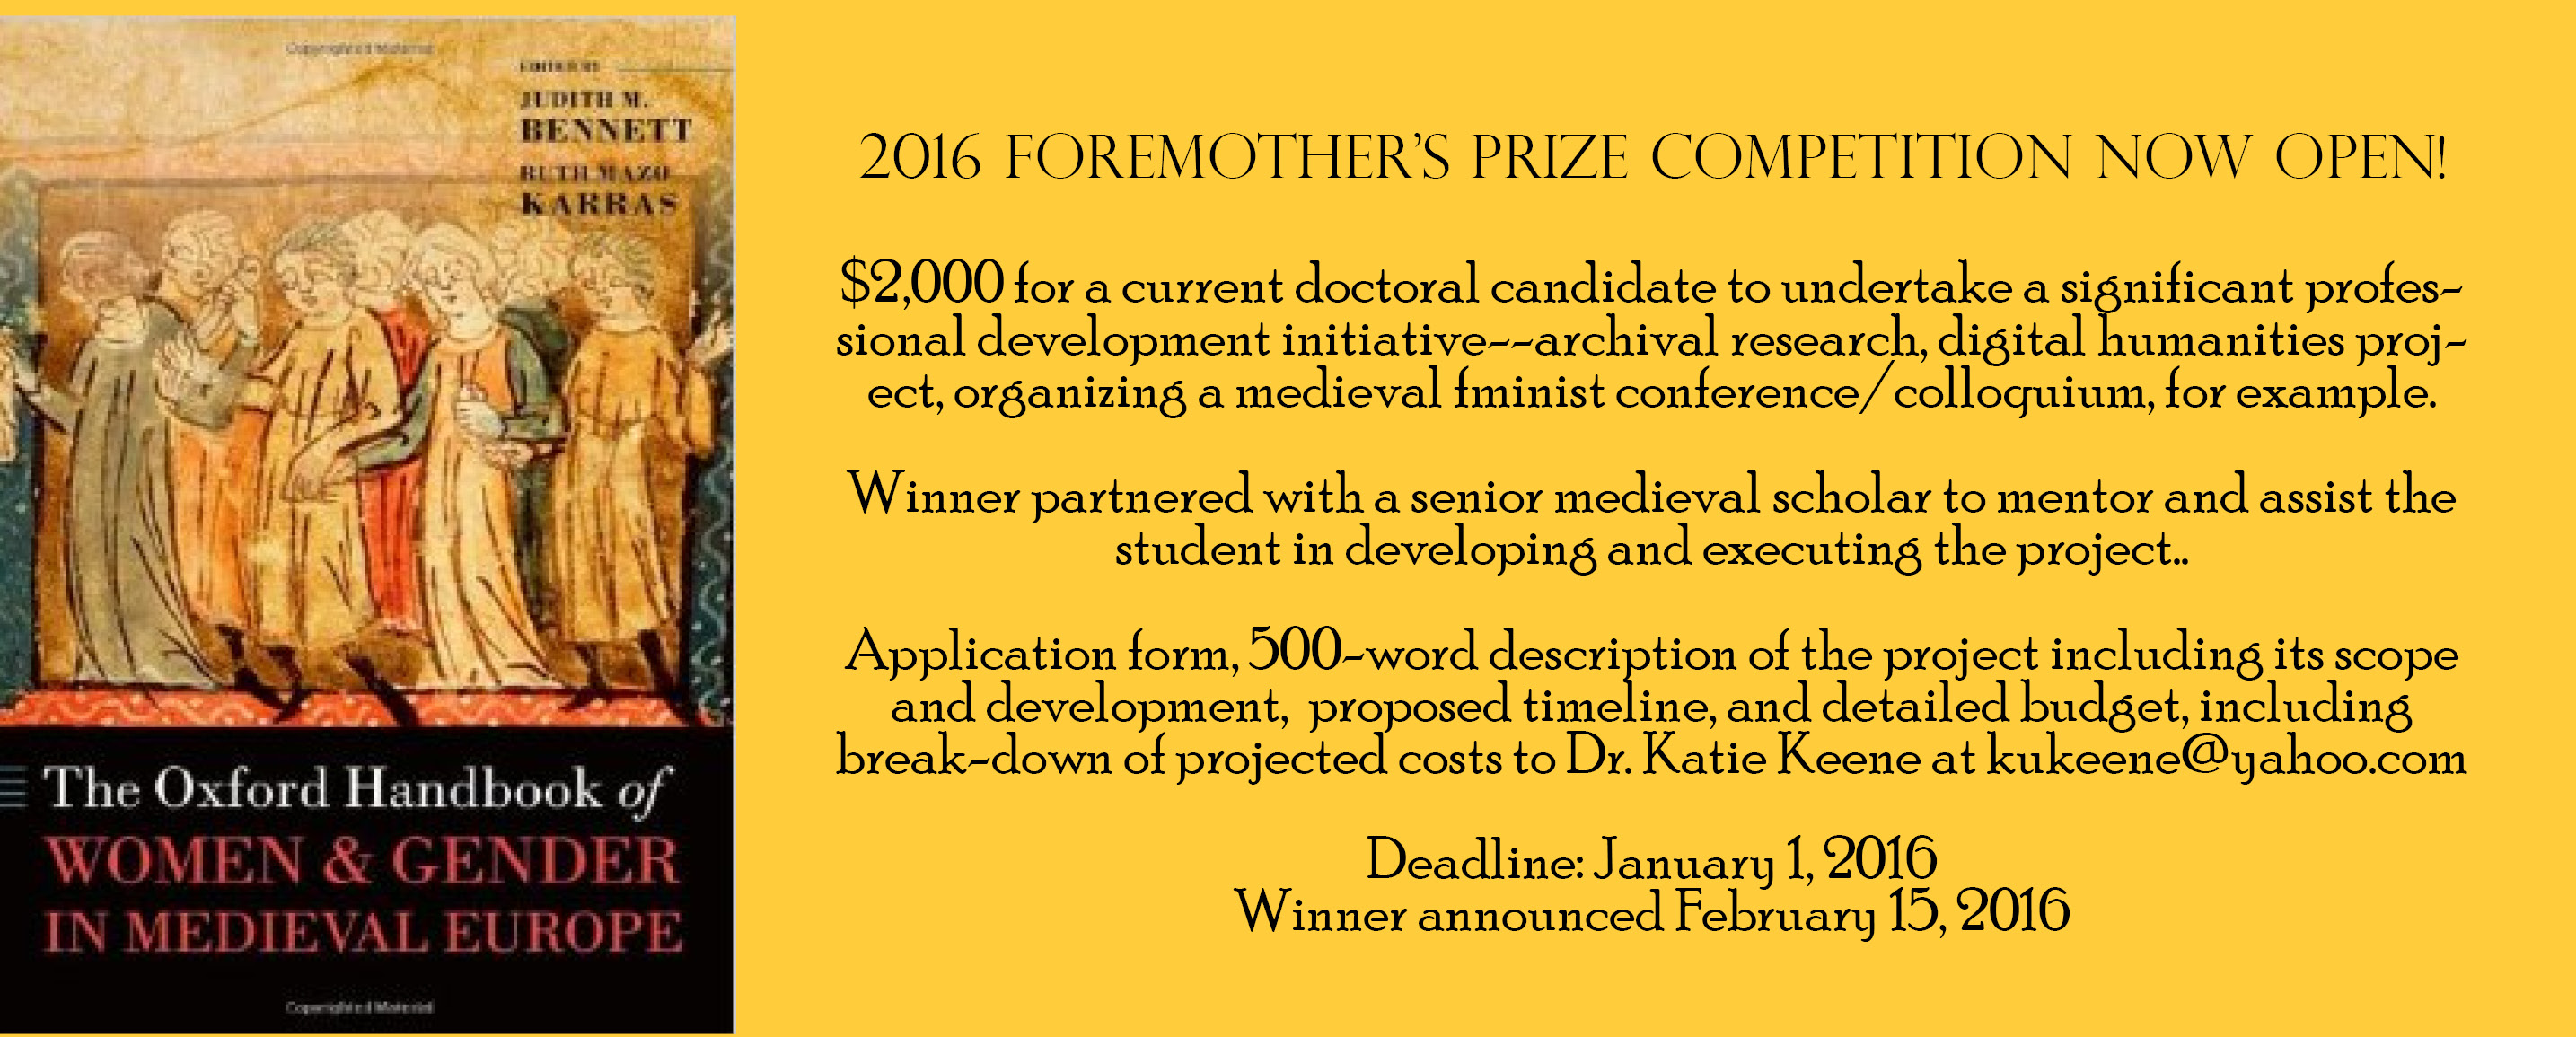 Foremother's Prize 2016